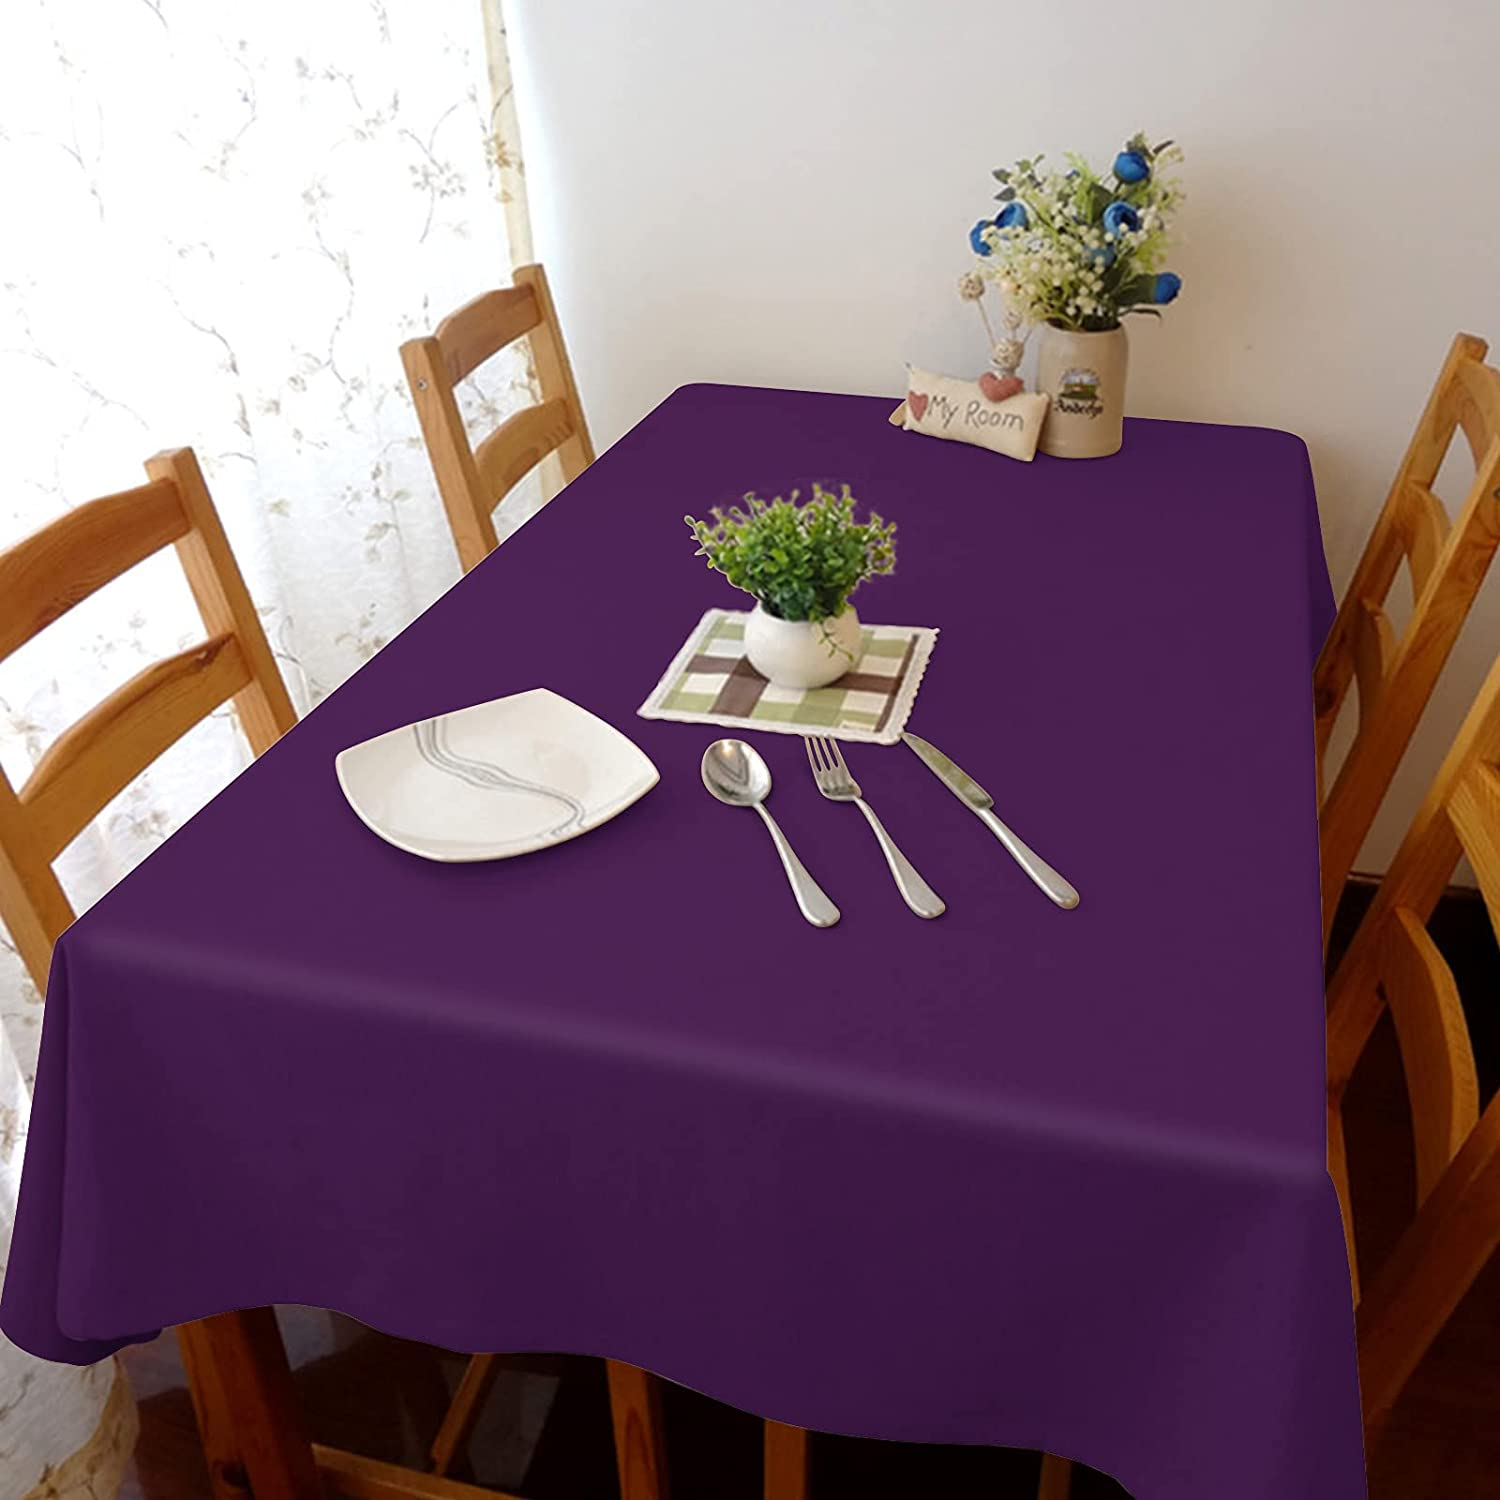 Flouky 60x120in Stretch Durable Dust-Pro Tablecloth Linen Opening Max 61% OFF large release sale Cotton